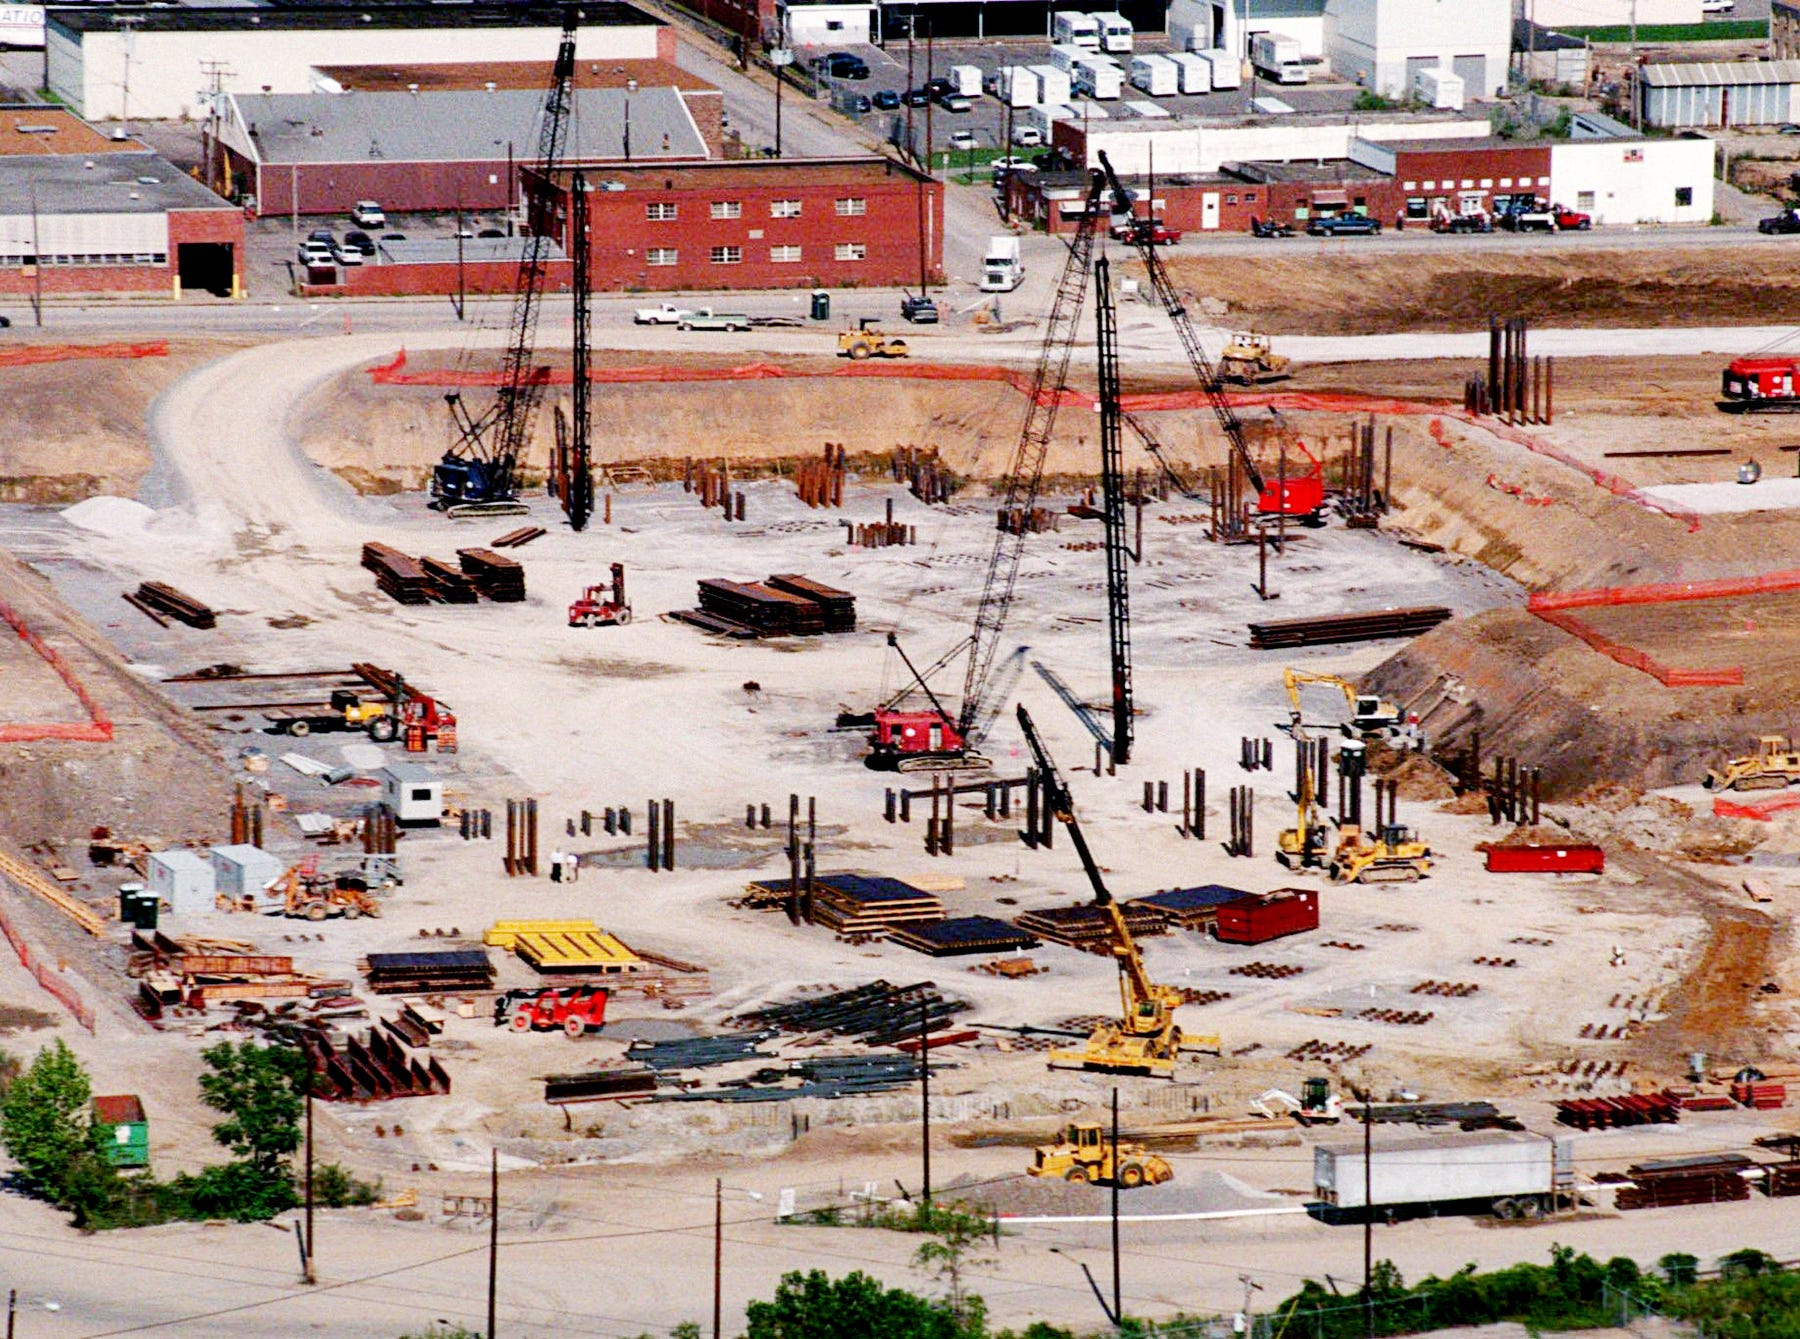 Construction moves along with the sinking of steel beams into the ground at the lowest point of the new football stadium Aug. 22, 1997. The field will obviously be lower than street level.